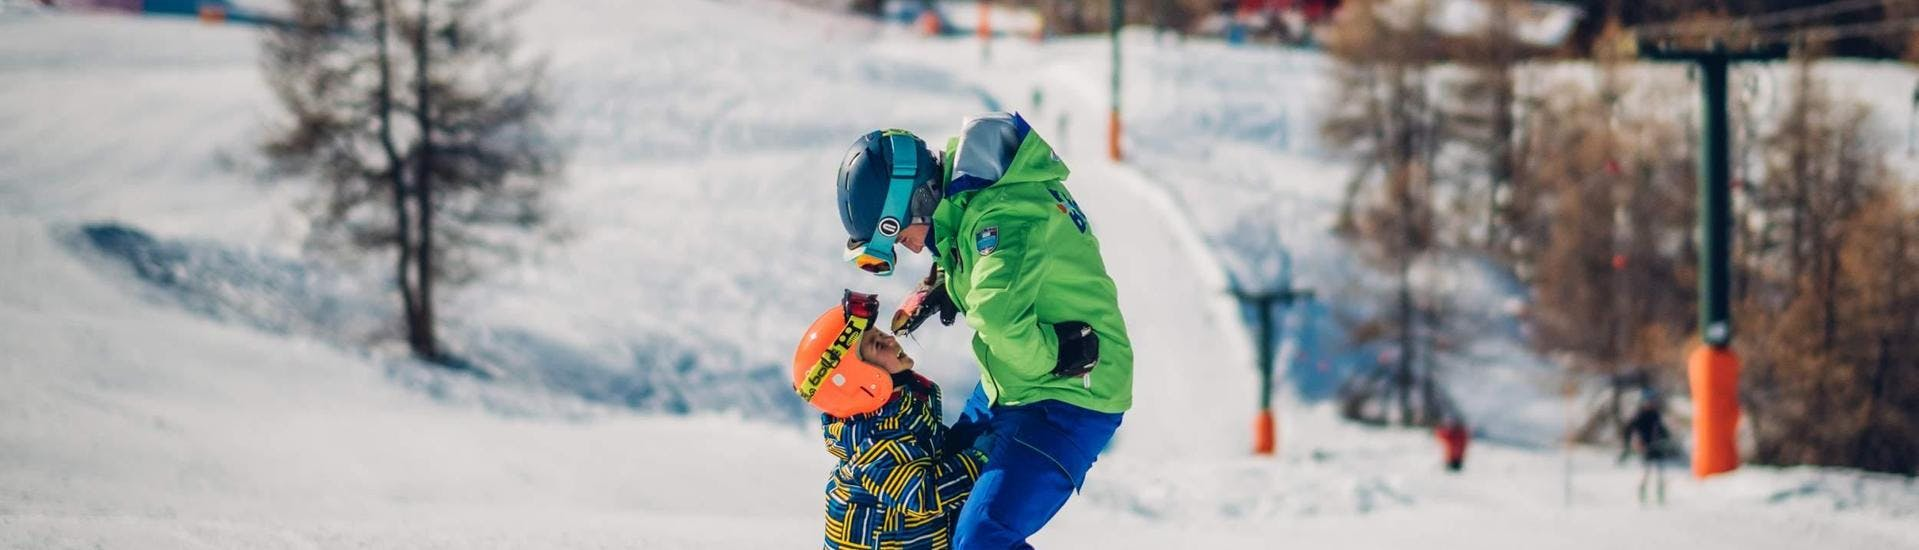 During the Private Ski Lessons for Kids - All Levels - Holidays, a small child enjoys the full attention of the ski instructor from the ski school Scuola di Sci B.foxes.